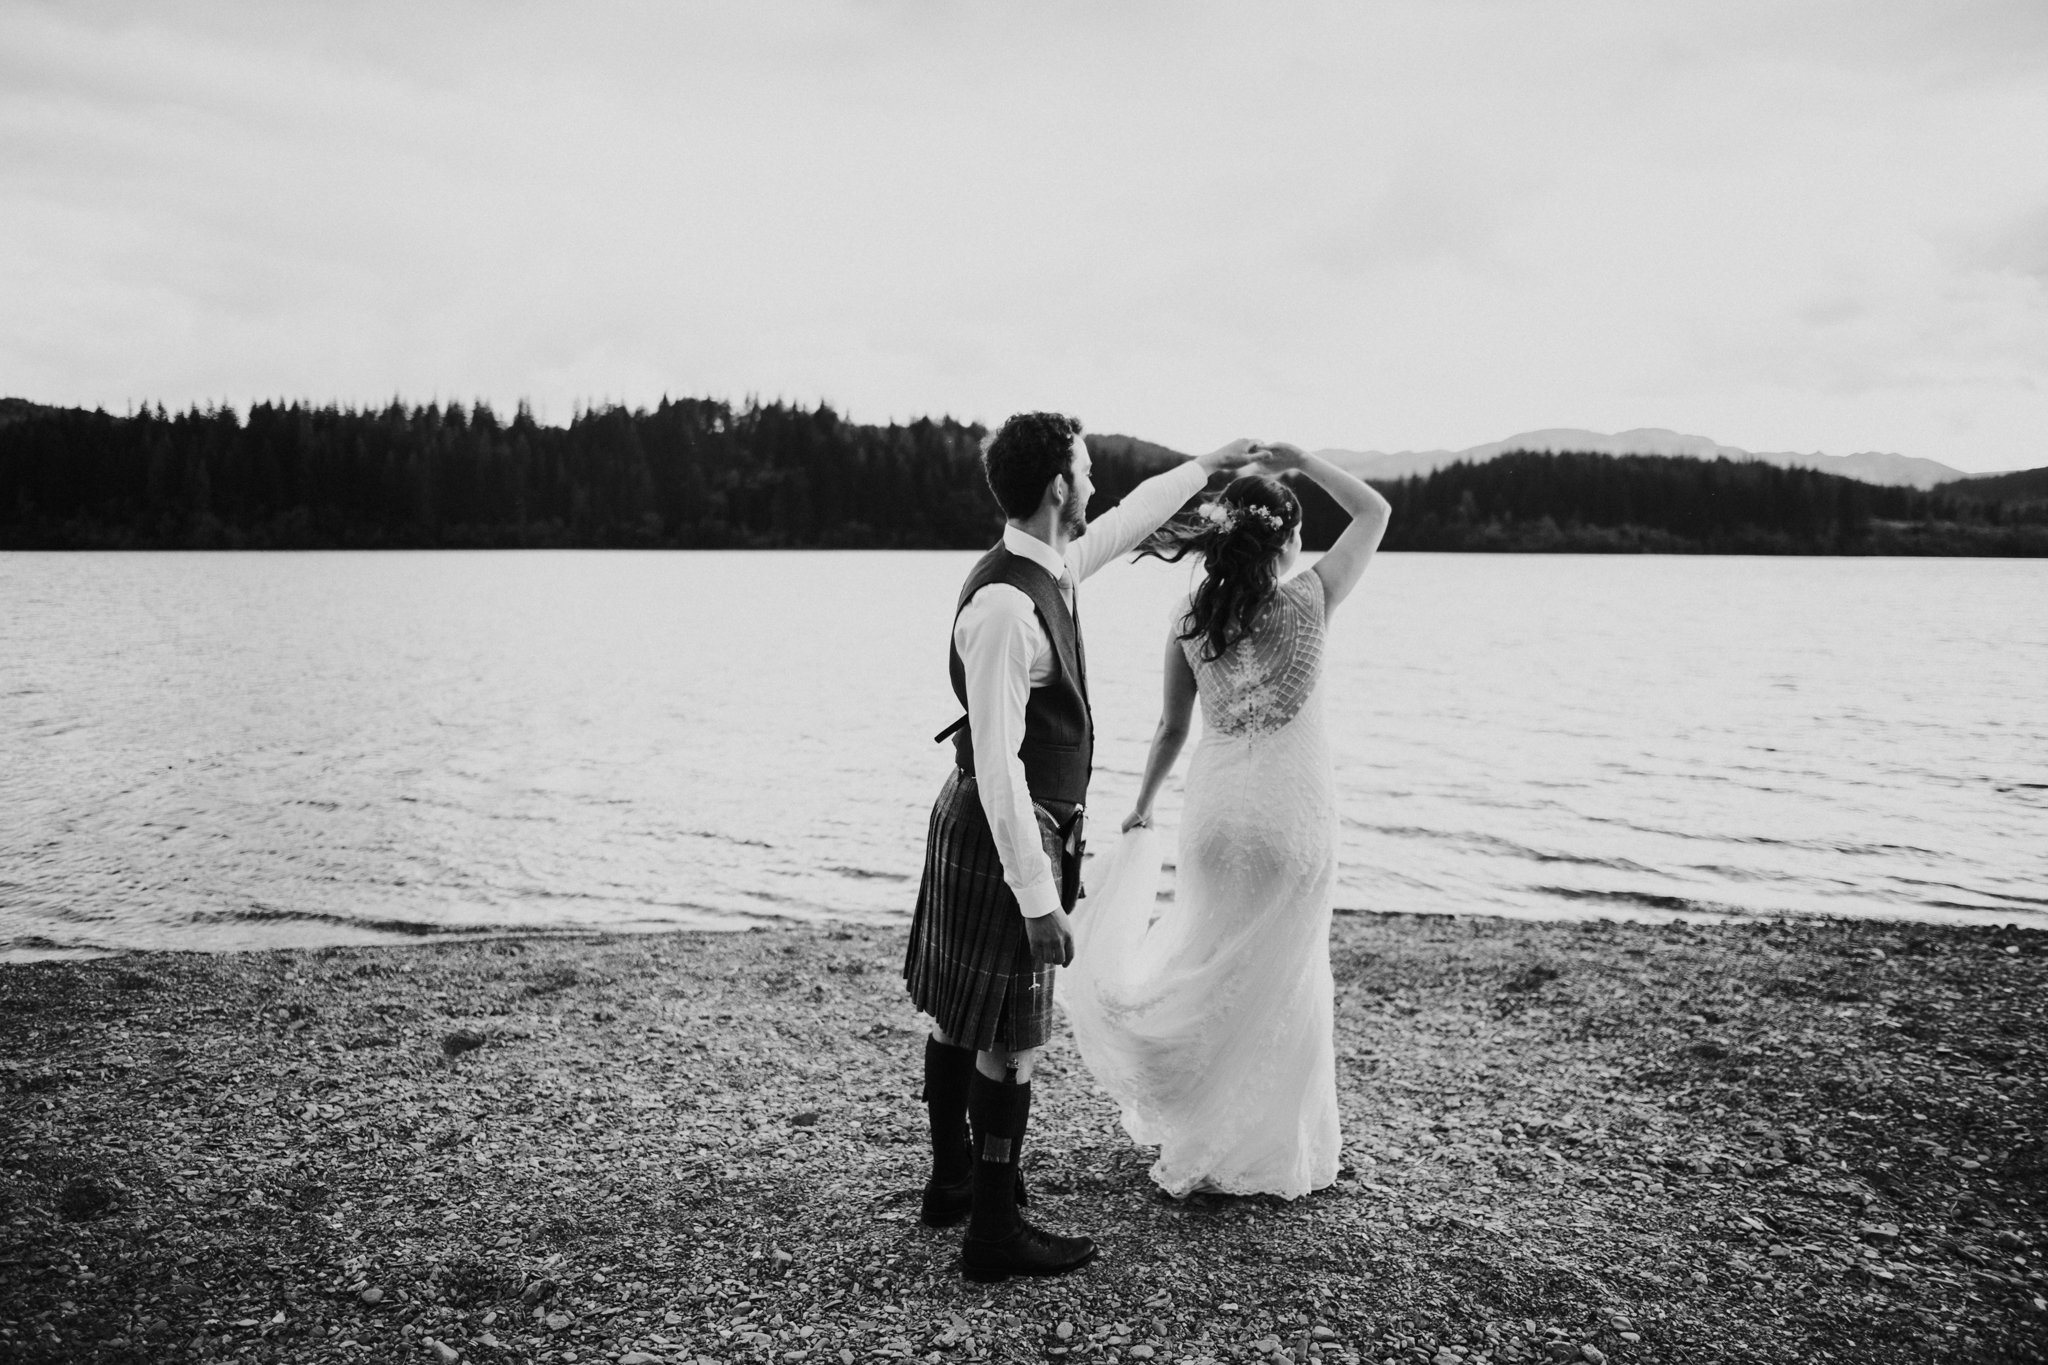 The couple is dancing on Loch Ard shores in Scotland